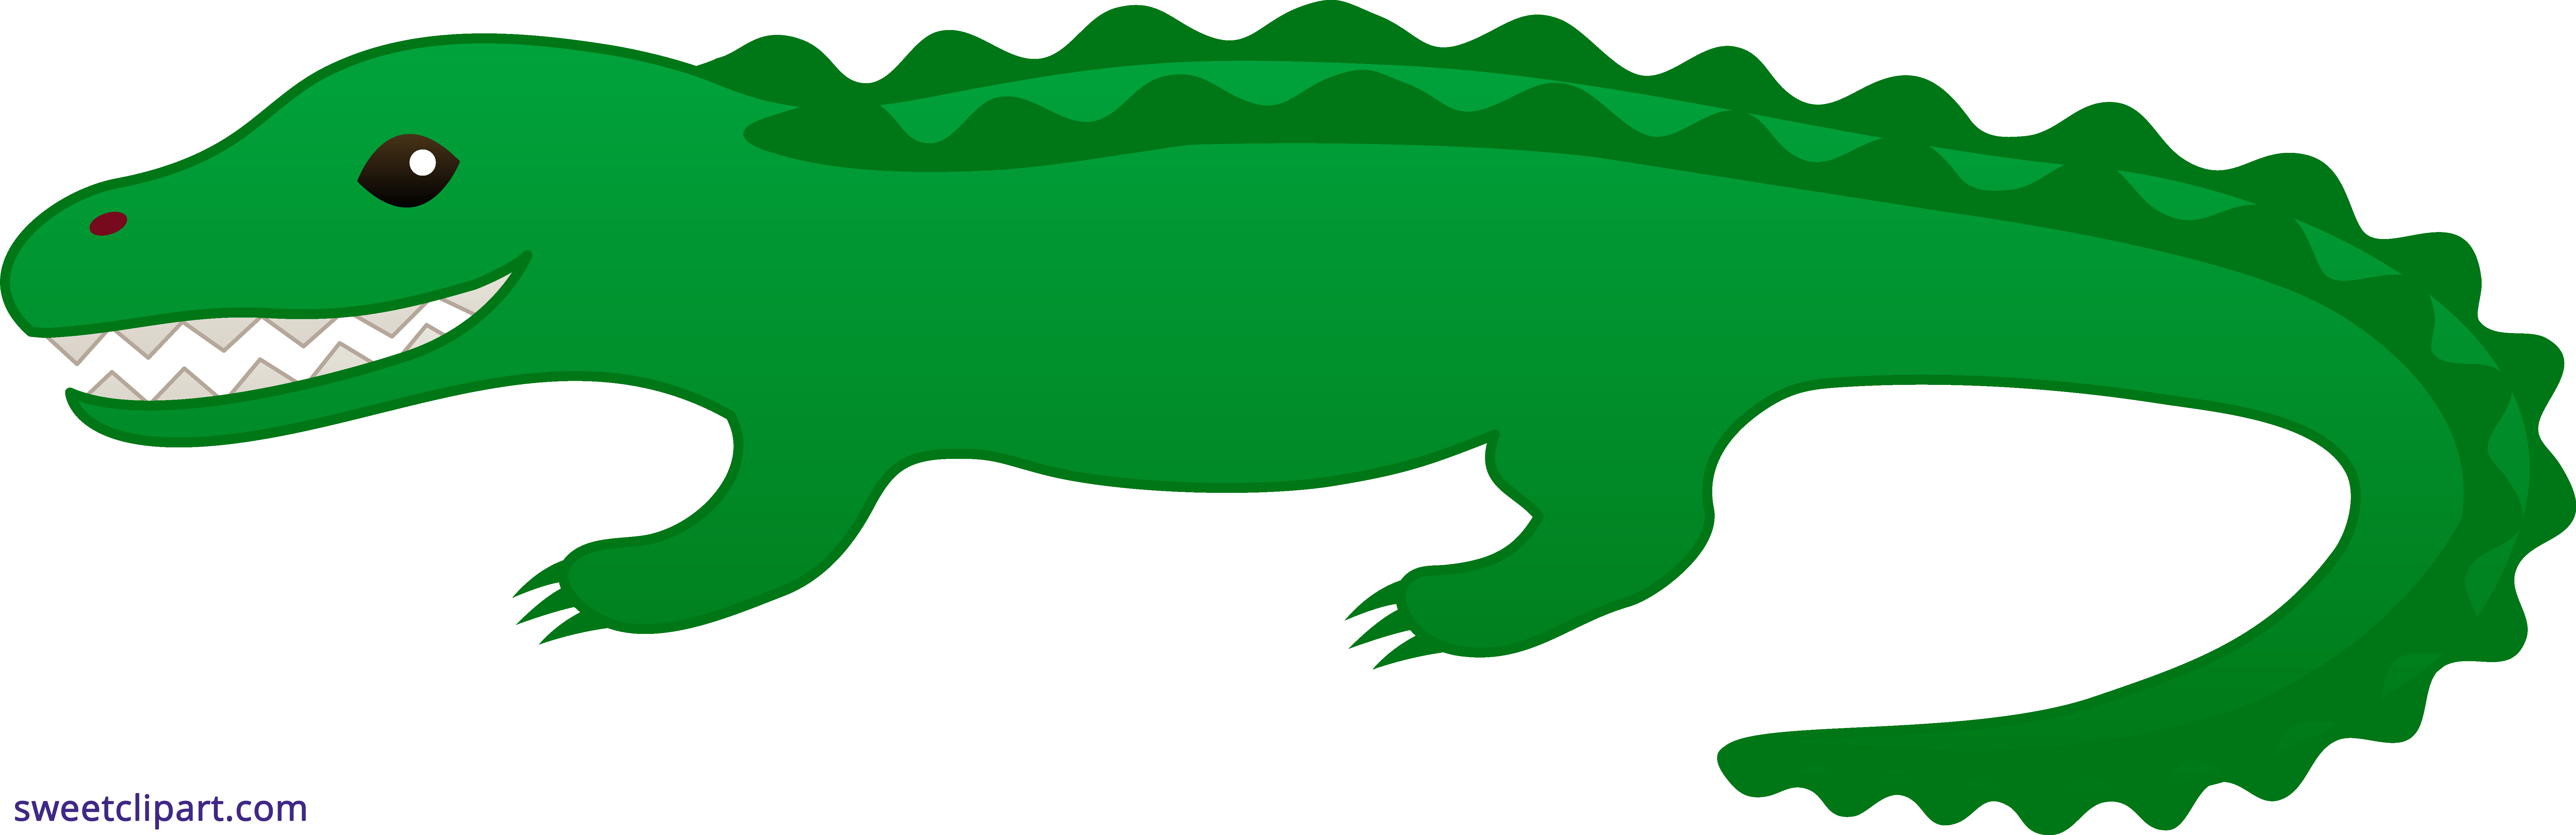 Halloween alligator clipart vector transparent library Nile Crocodile Clipart at GetDrawings.com   Free for personal use ... vector transparent library